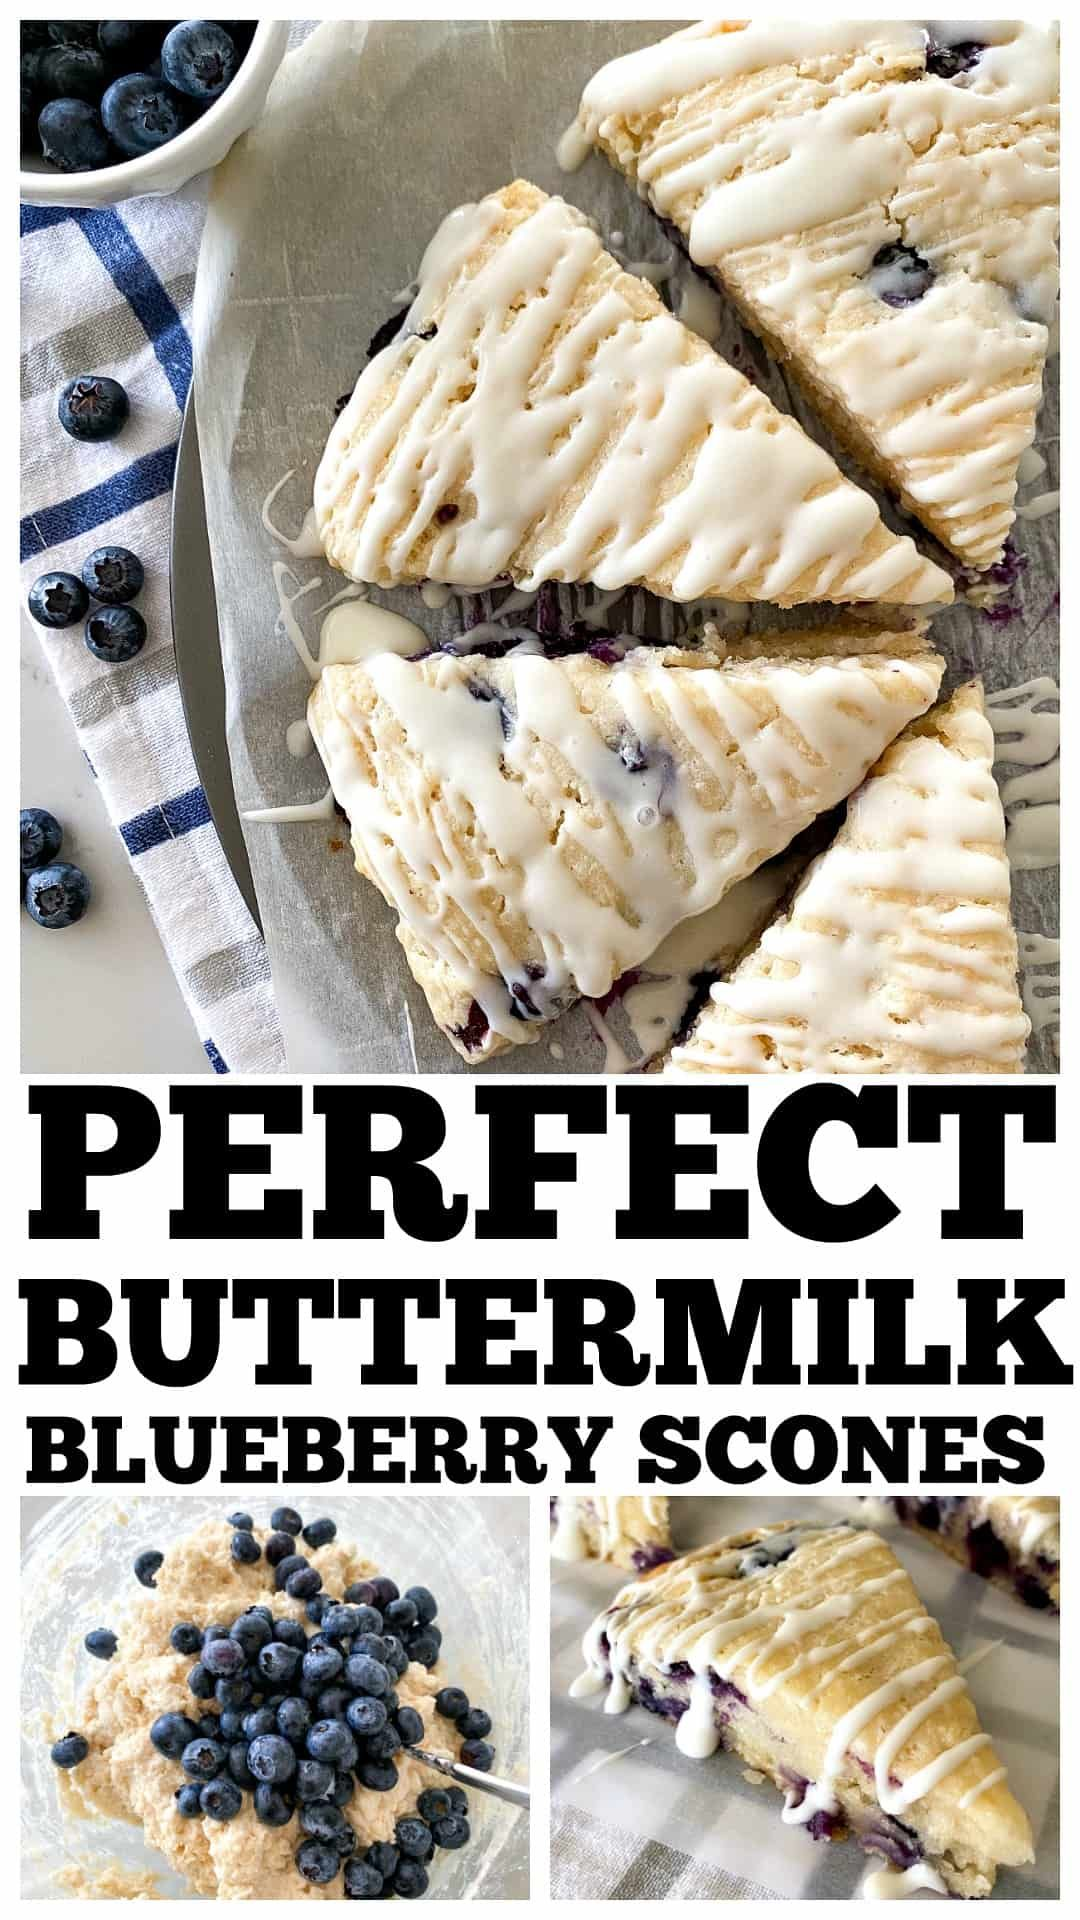 PERFECT Buttermilk Blueberry Scones recipe! You won\'t ever need another recipe! #scones #sconerecipe #buttermilkscones #blueberryscones